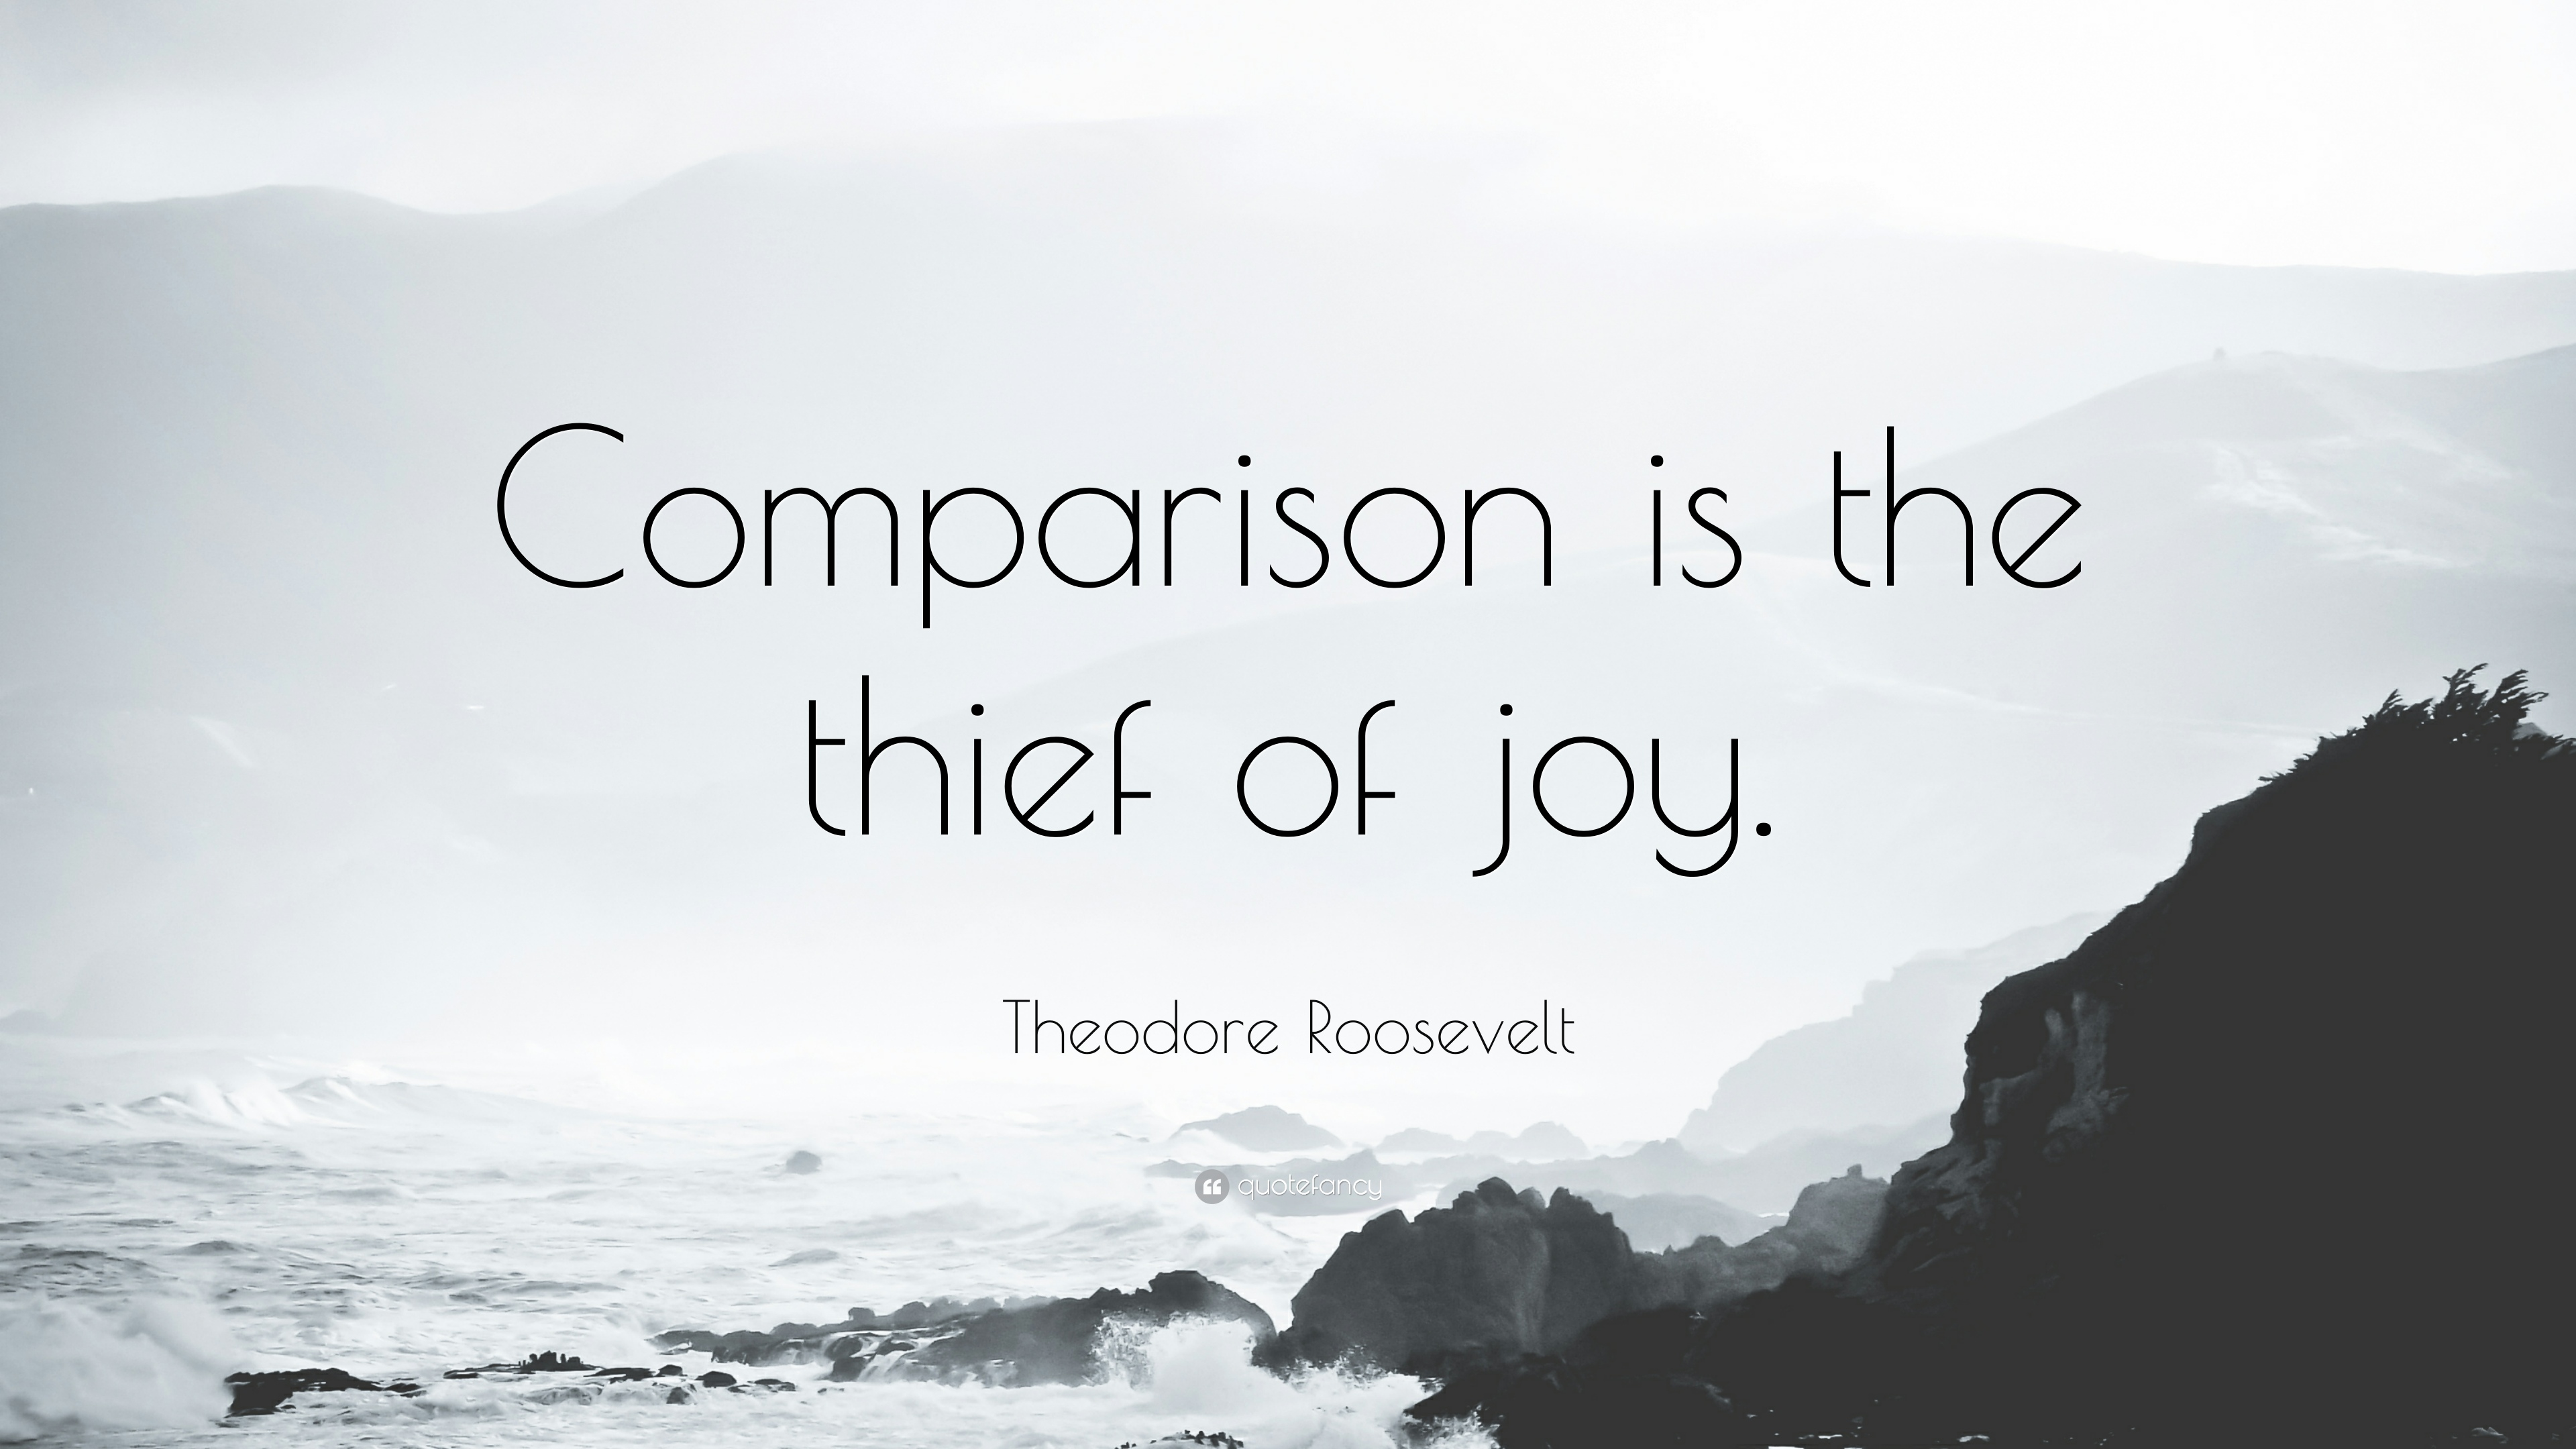 theodore roosevelt comparison is the thief of joy